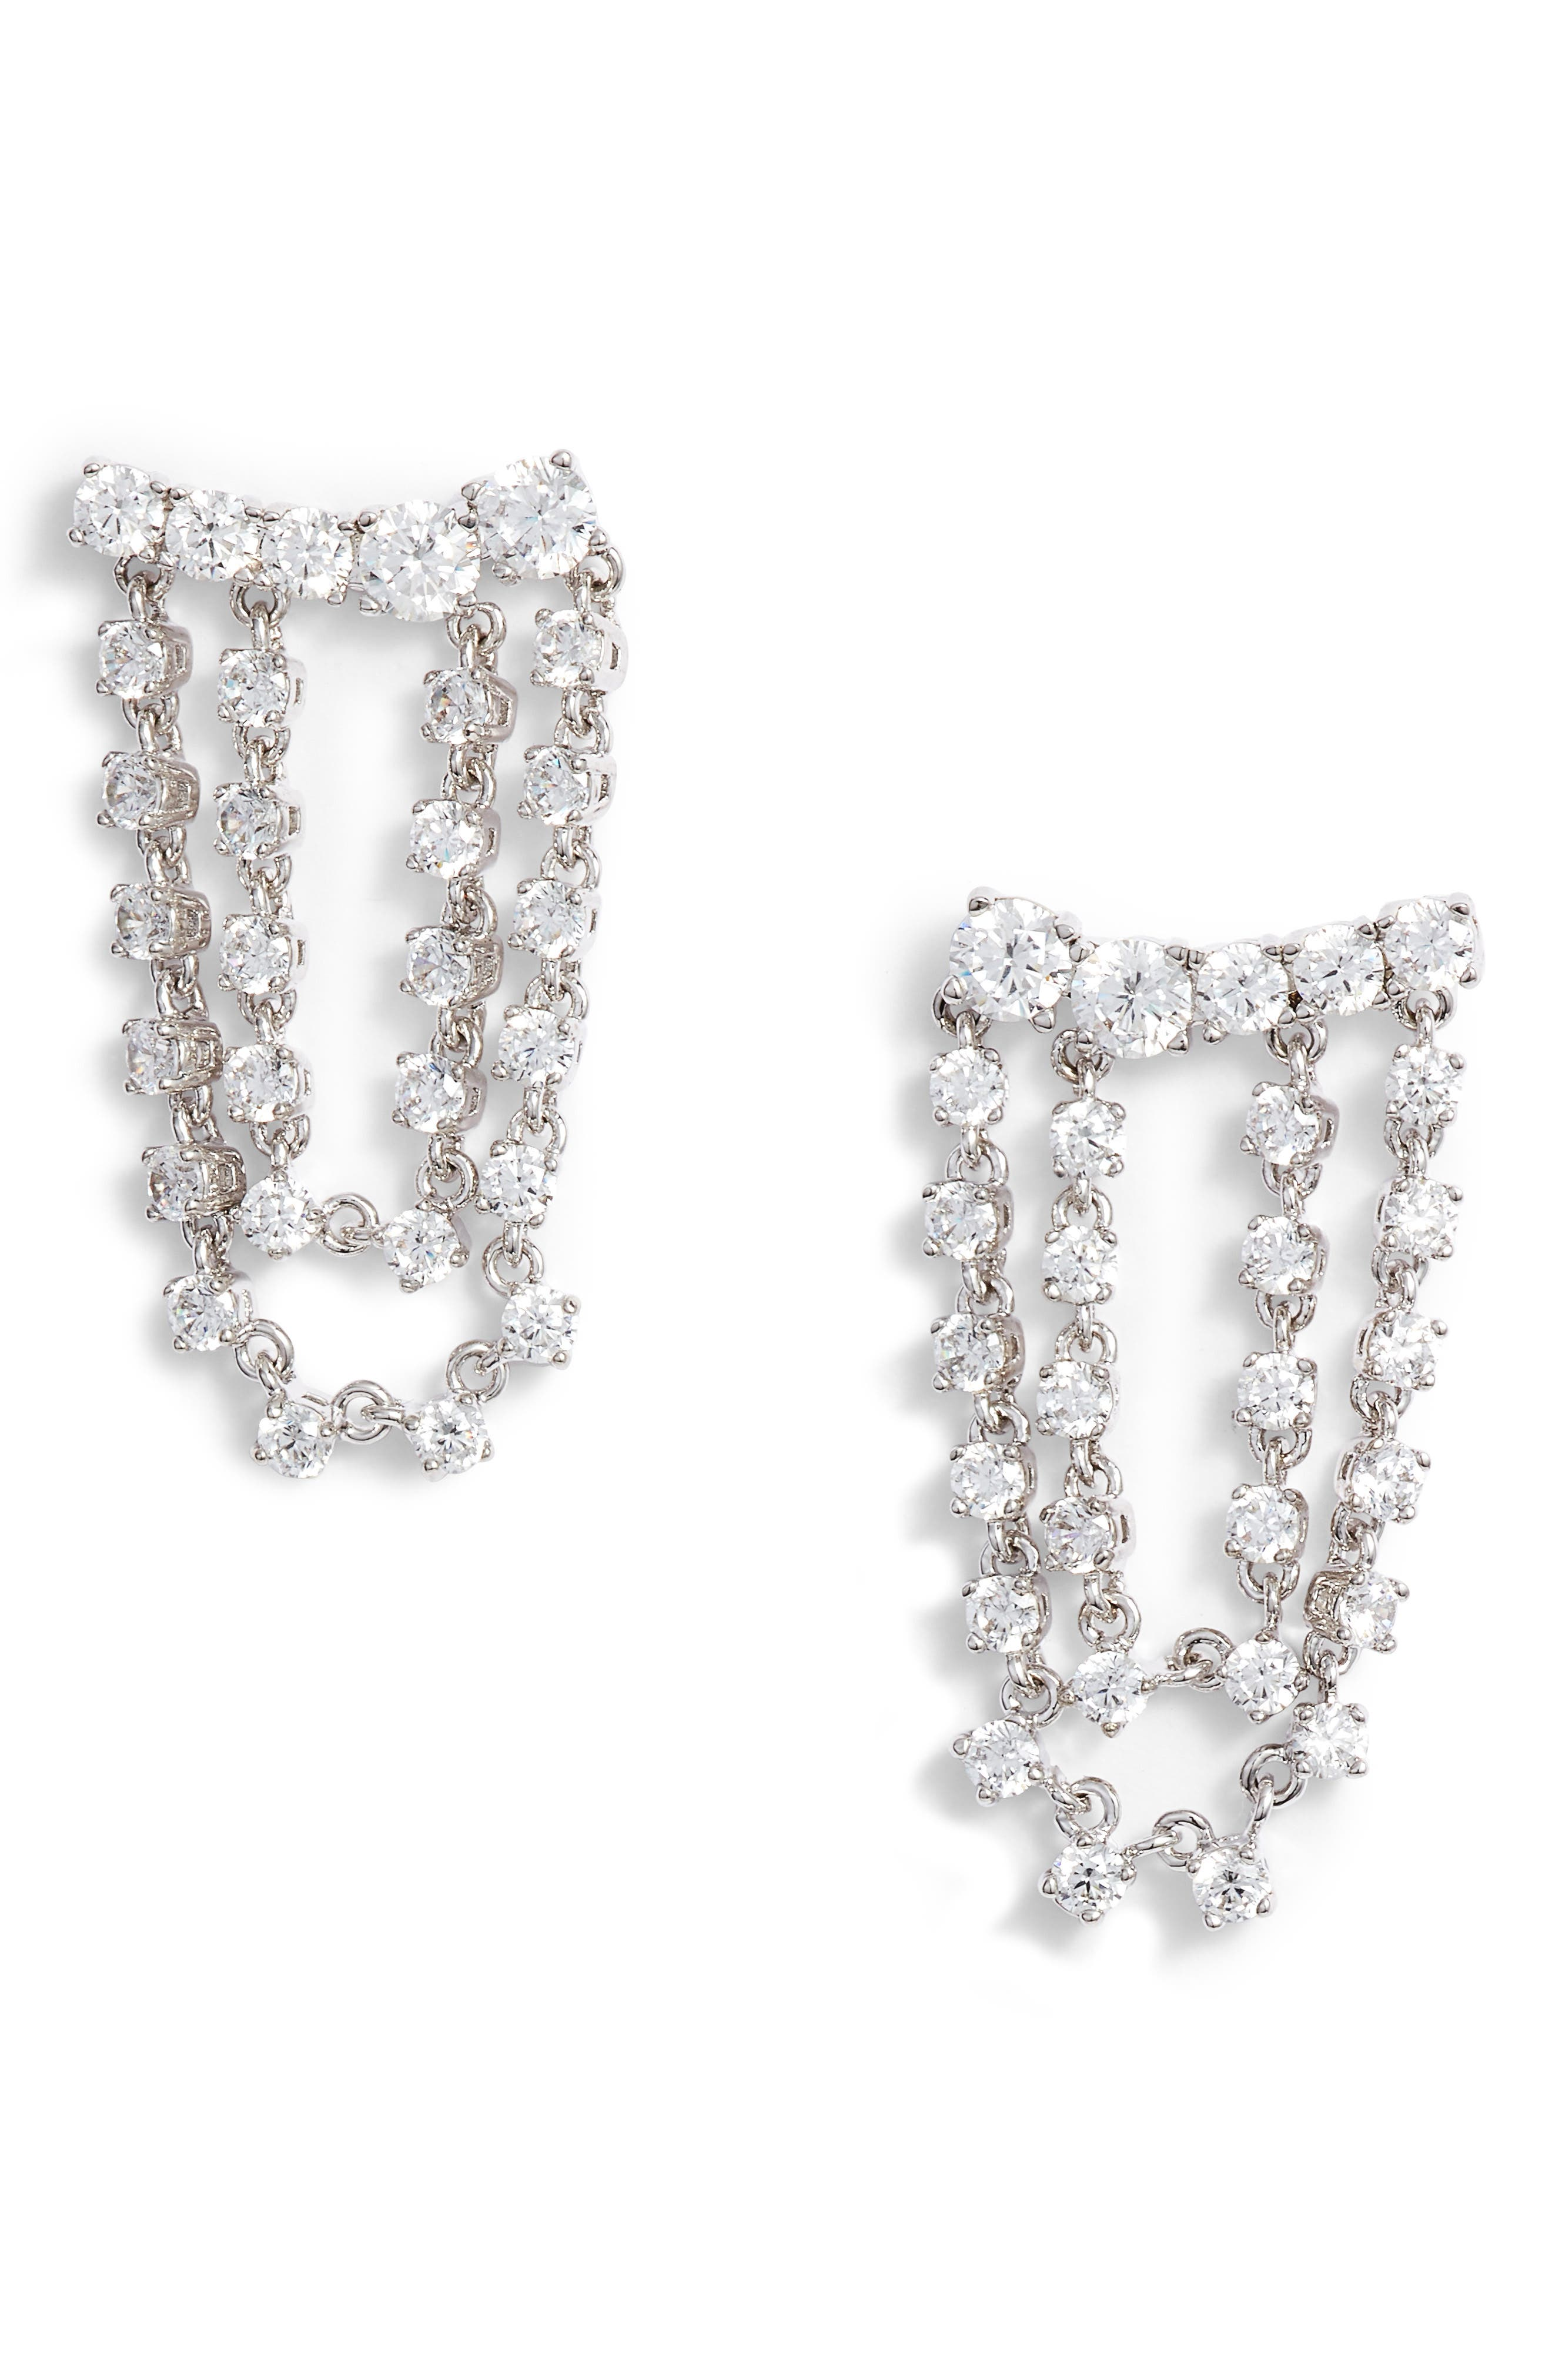 Draped Cubic Zirconia Earrings,                         Main,                         color, CLEAR- SILVER